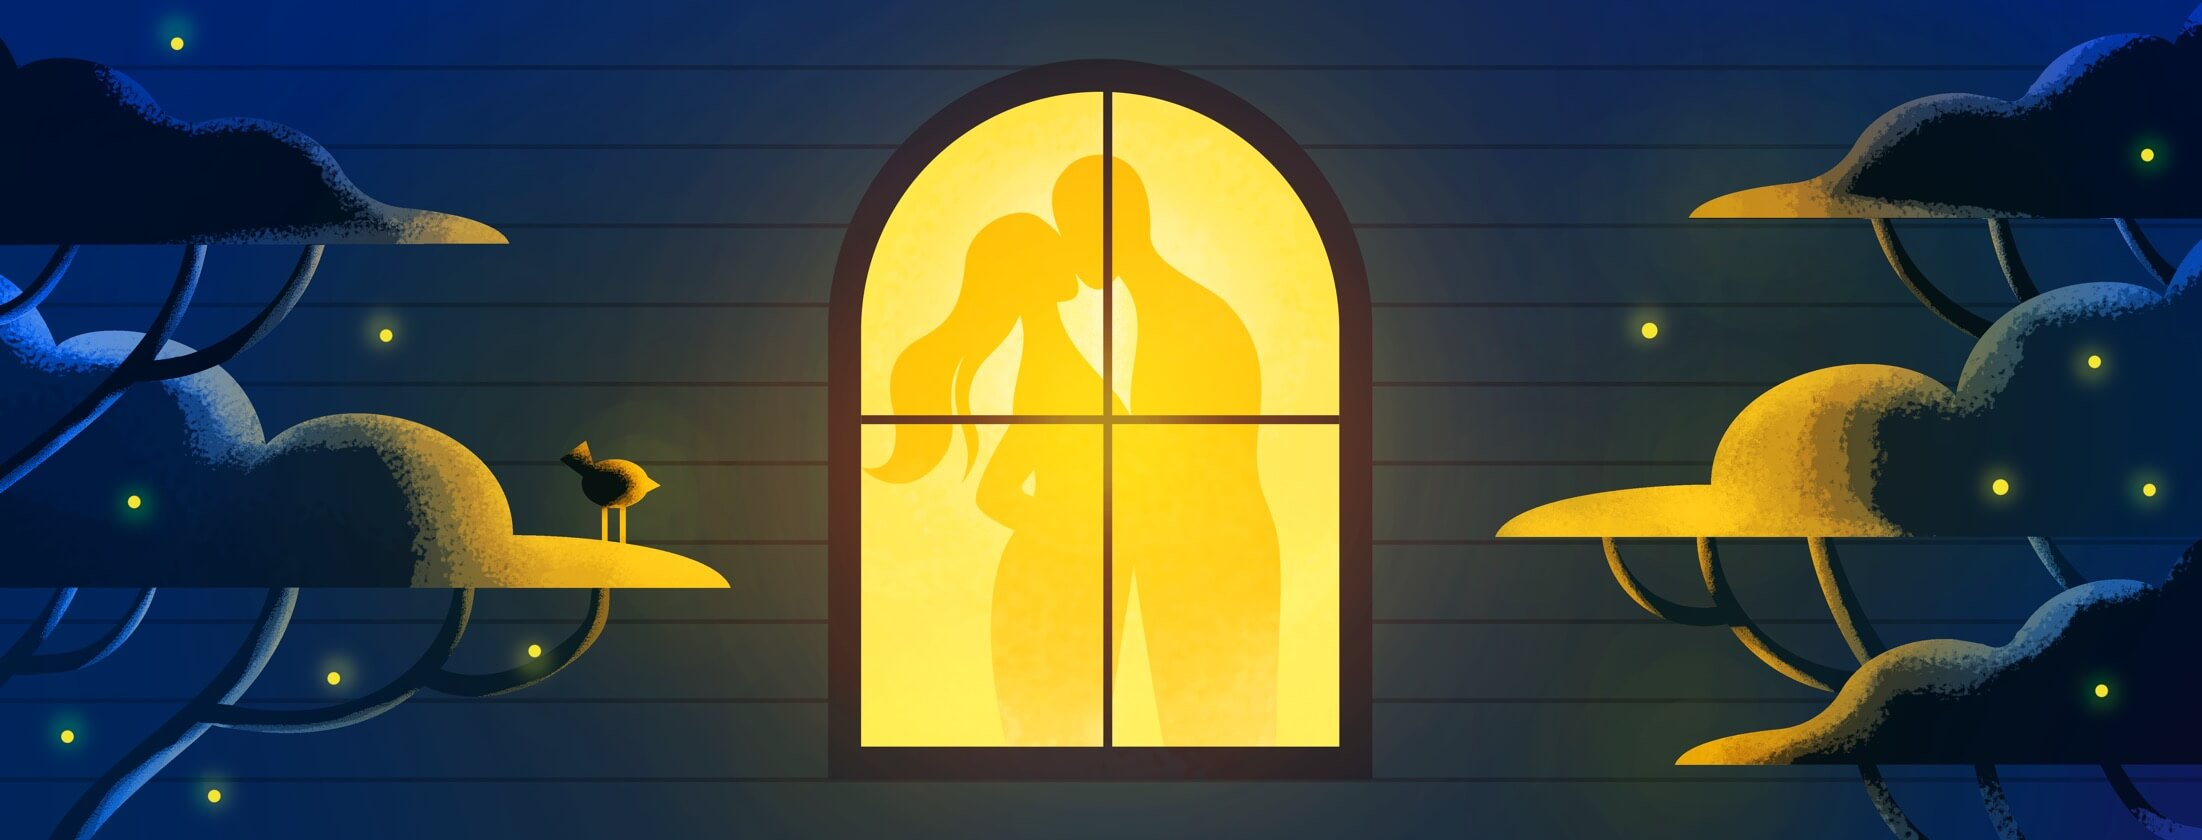 Man & women standing in window embracing